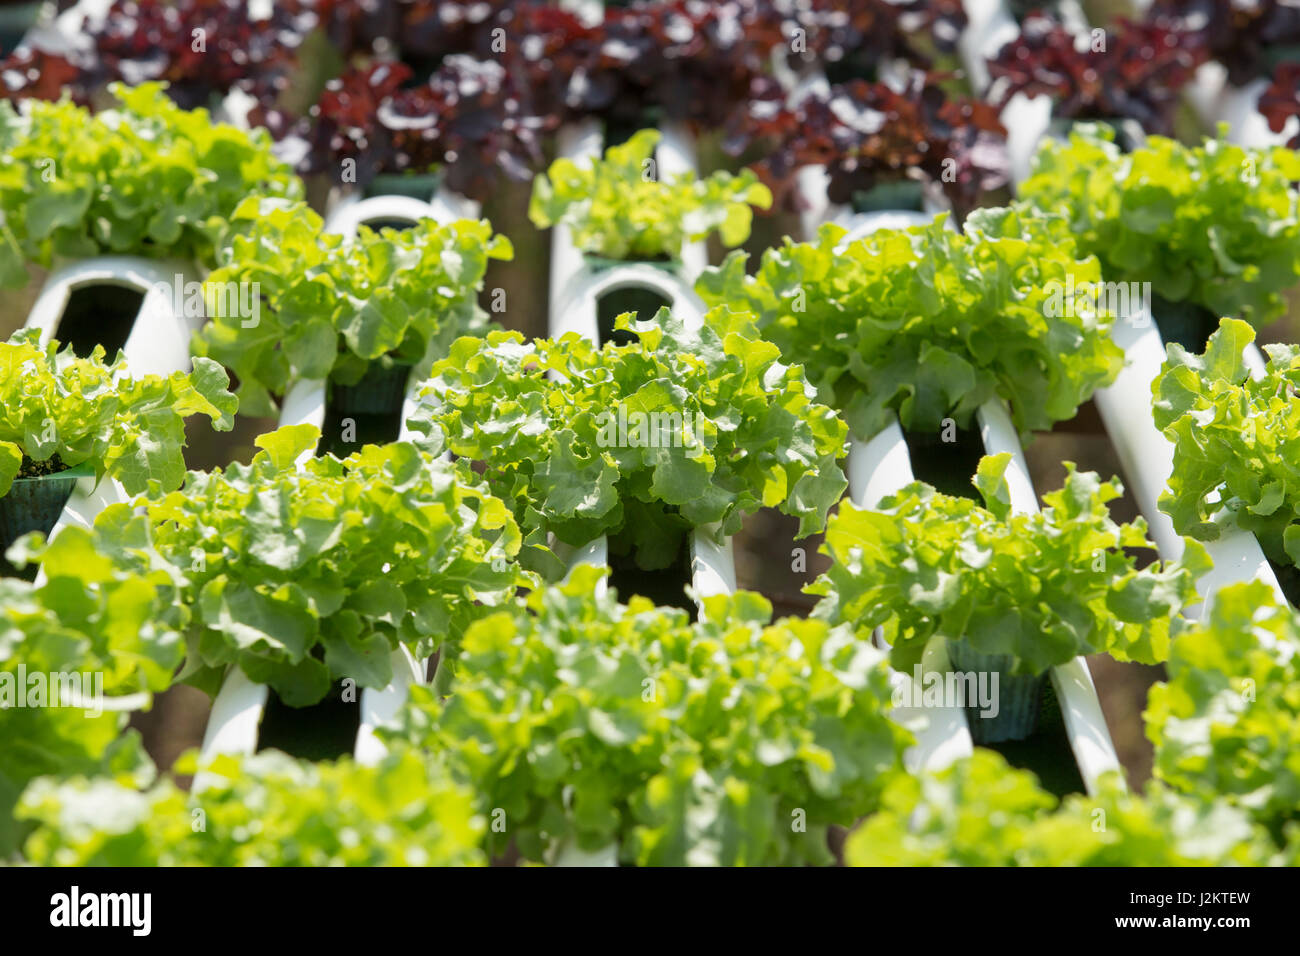 Hydroponics method of growing plants using mineral nutrient